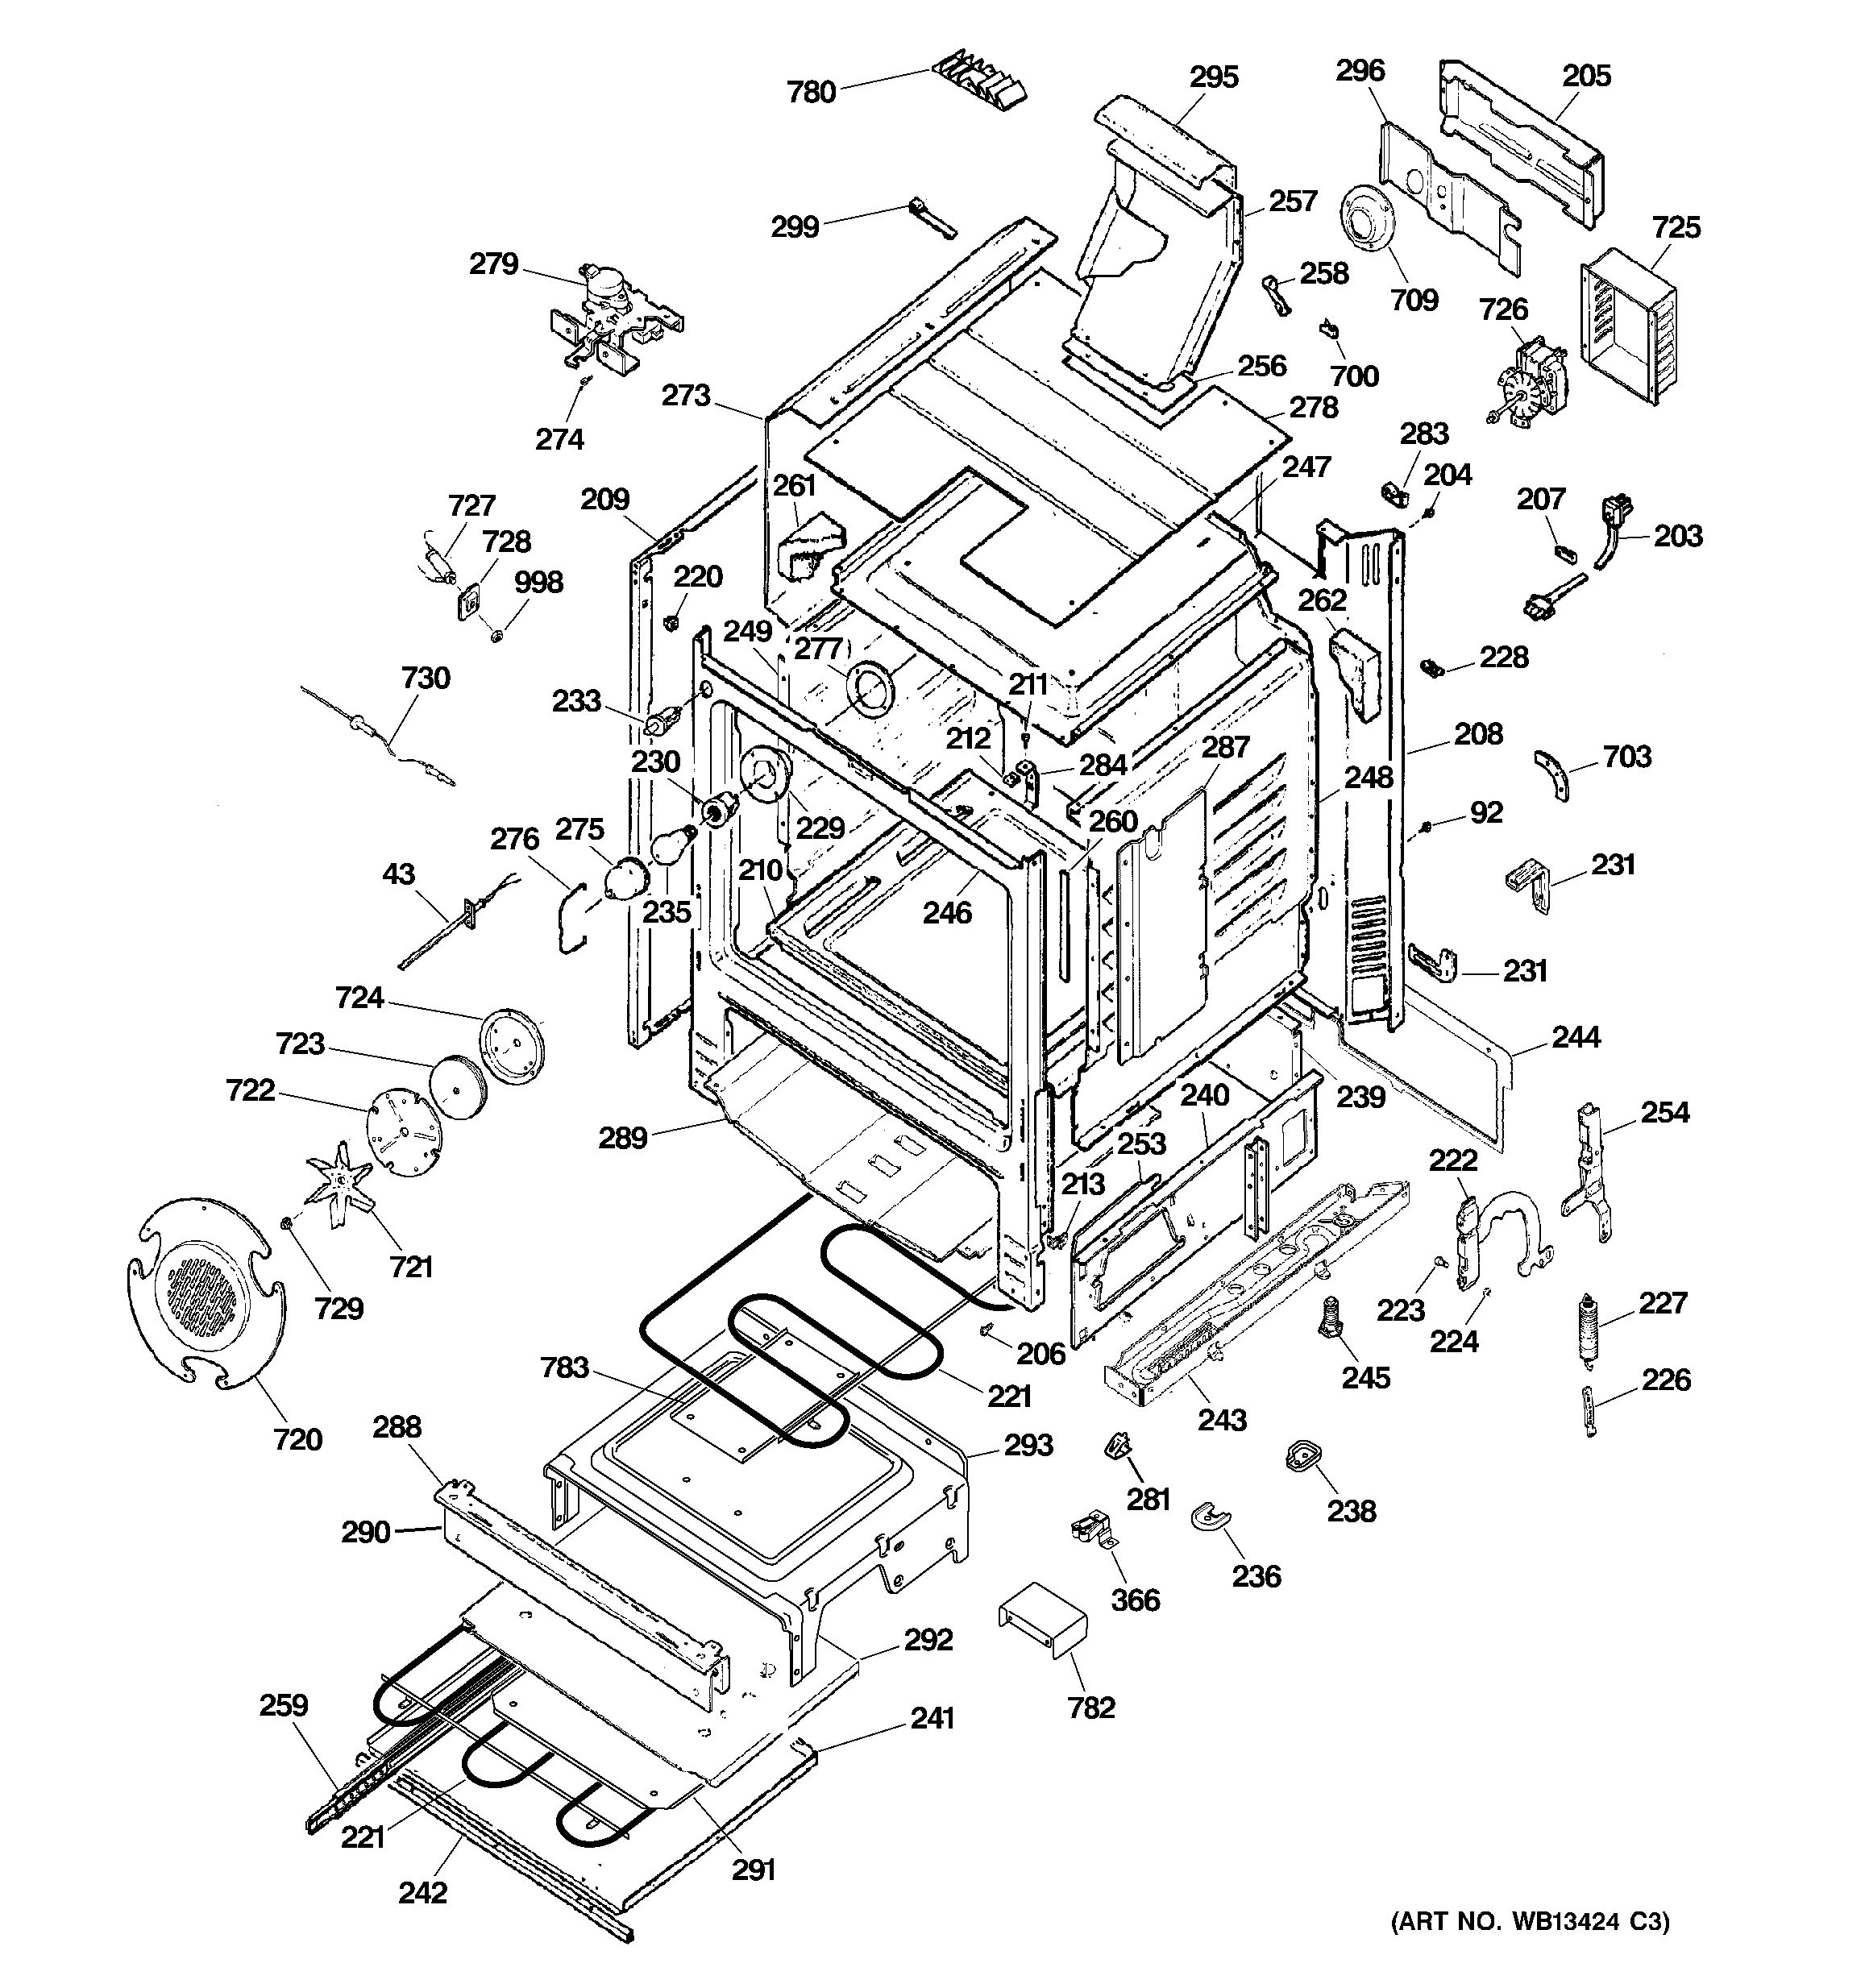 Assembly View For Body Parts